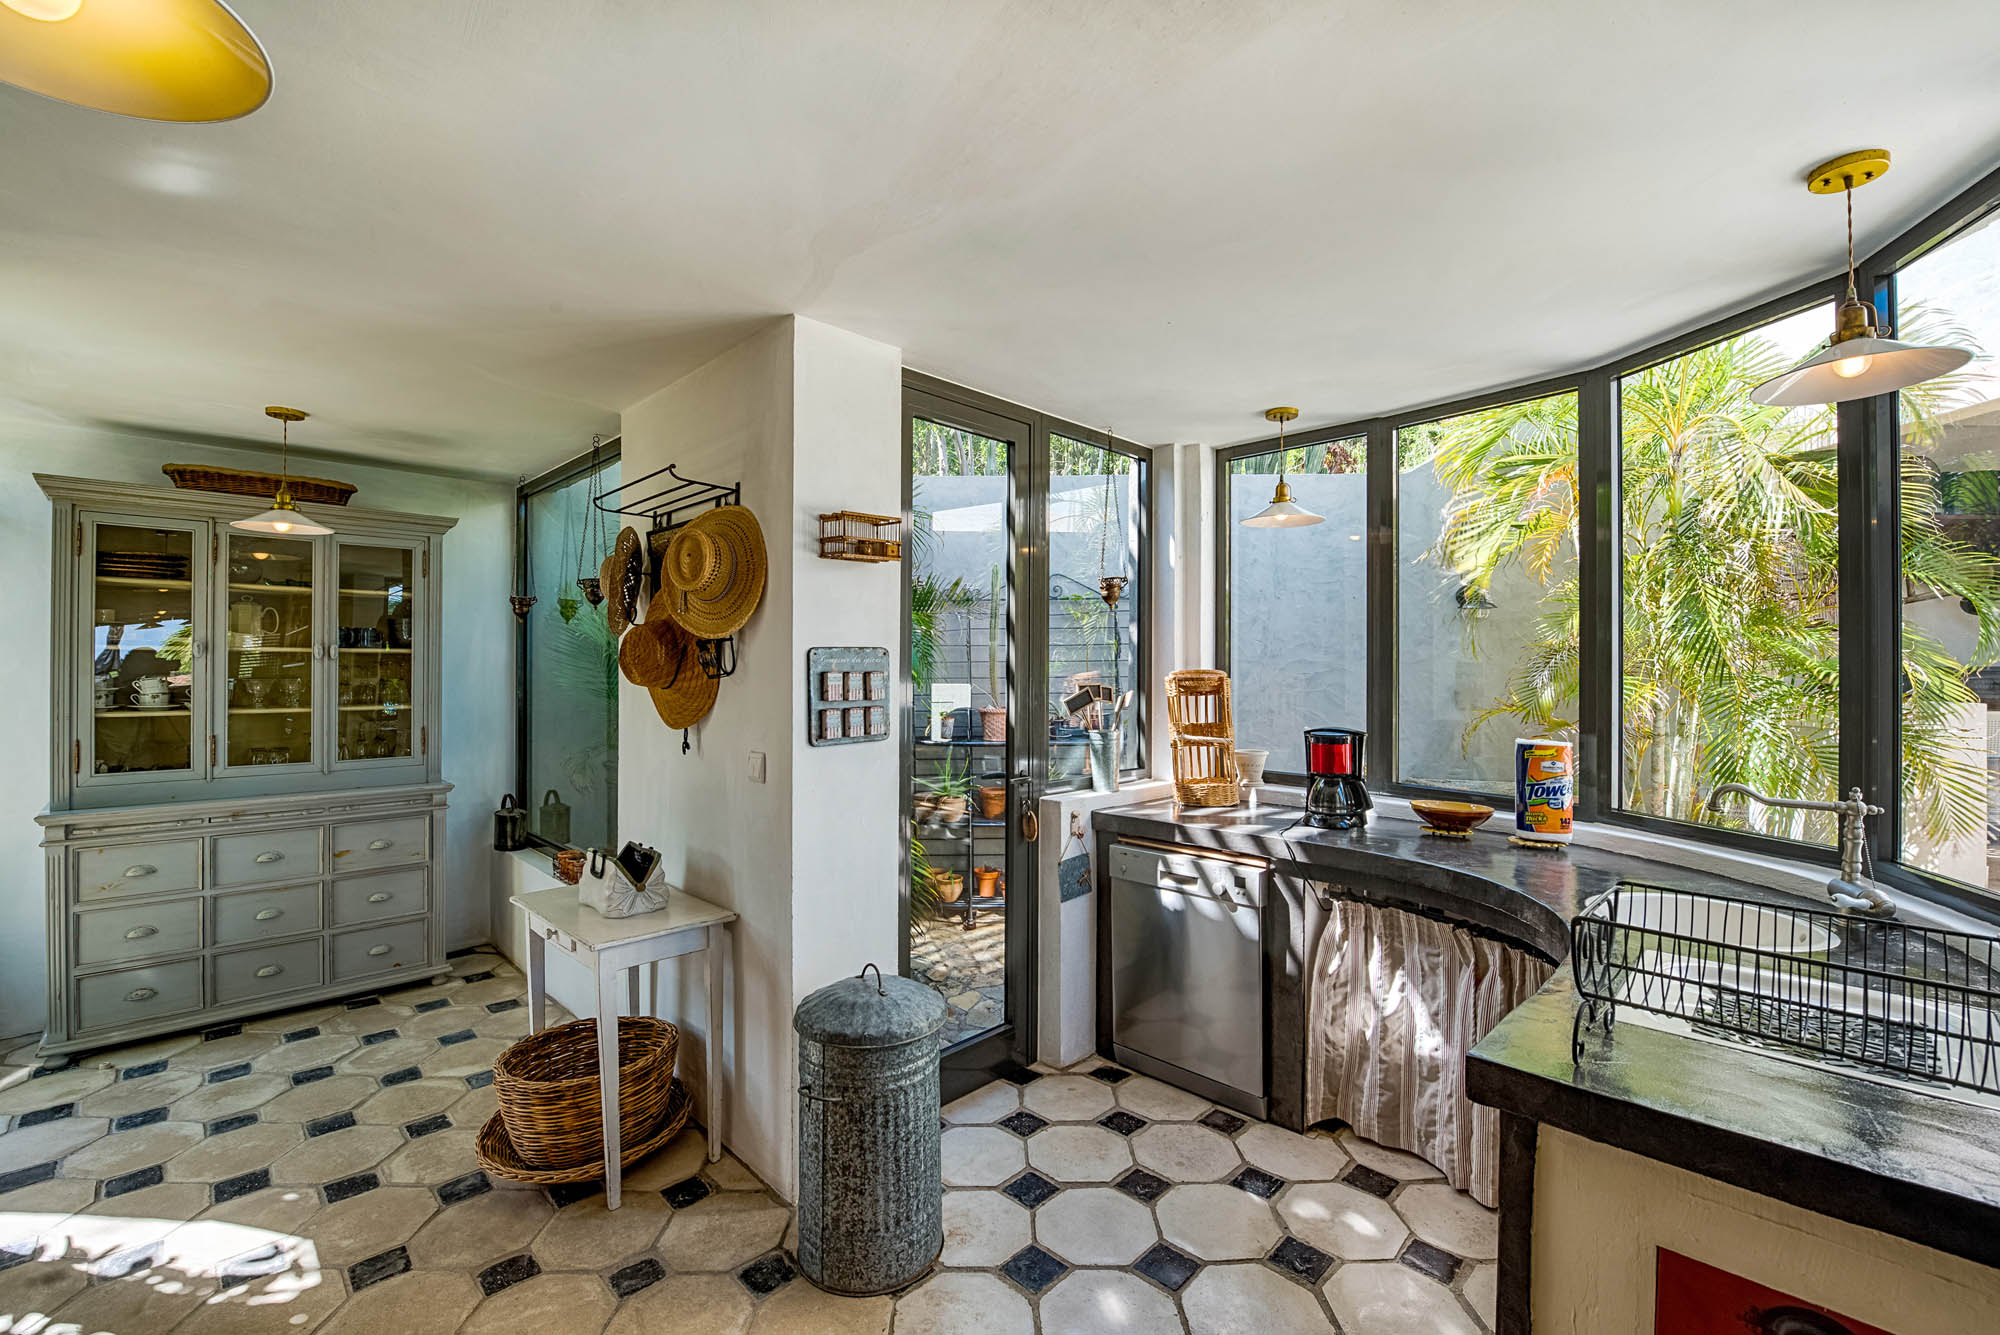 The open and stylish gourmet kitchen at Le Mas des Sables villa rental, Baie aux Cayes, Terres Basses, Saint Martin, Caribbean.